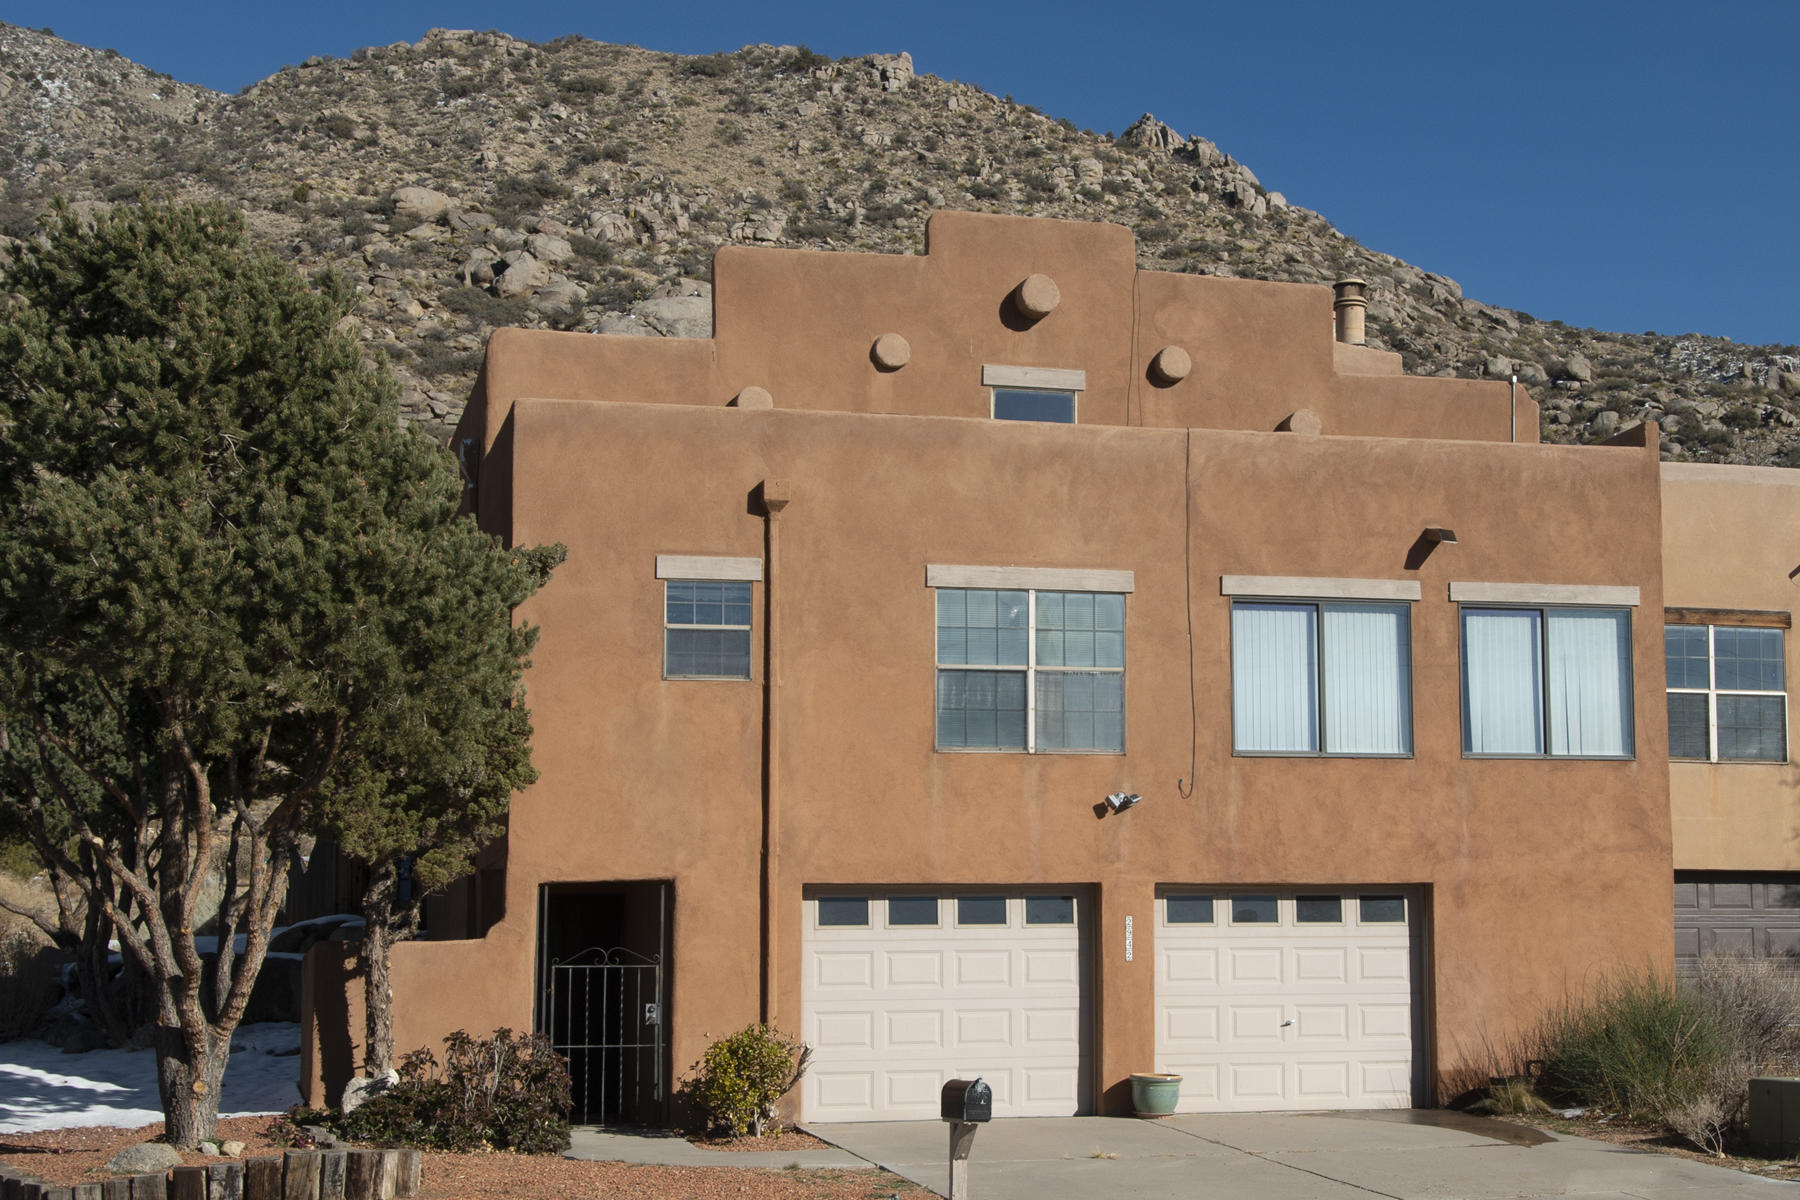 Bright & sunny townhome at the base of the foothills with the backyard looking right at the Open Space and trail heads to some of the best trails the city has to offer. Garage & entry are the main level with stairs (outfitted with chairlifts) headed to the upper level. Beautiful city & sunset views from both the kitchen & the formal dining area. High, soaring, beamed ceilings and a central atrium next to the wood burning fireplace will keep you cozy. When it's bedtime, enjoy the generous master suite with plenty of room for a reading chair or treadmill complete with a sunny view of the foothills. Separate laundry room shares the door to the backyard. Venture outdoors in a neighborhood that regularly has a cast of characters including coyote, foxes, raccoons, deer and on rare occasions